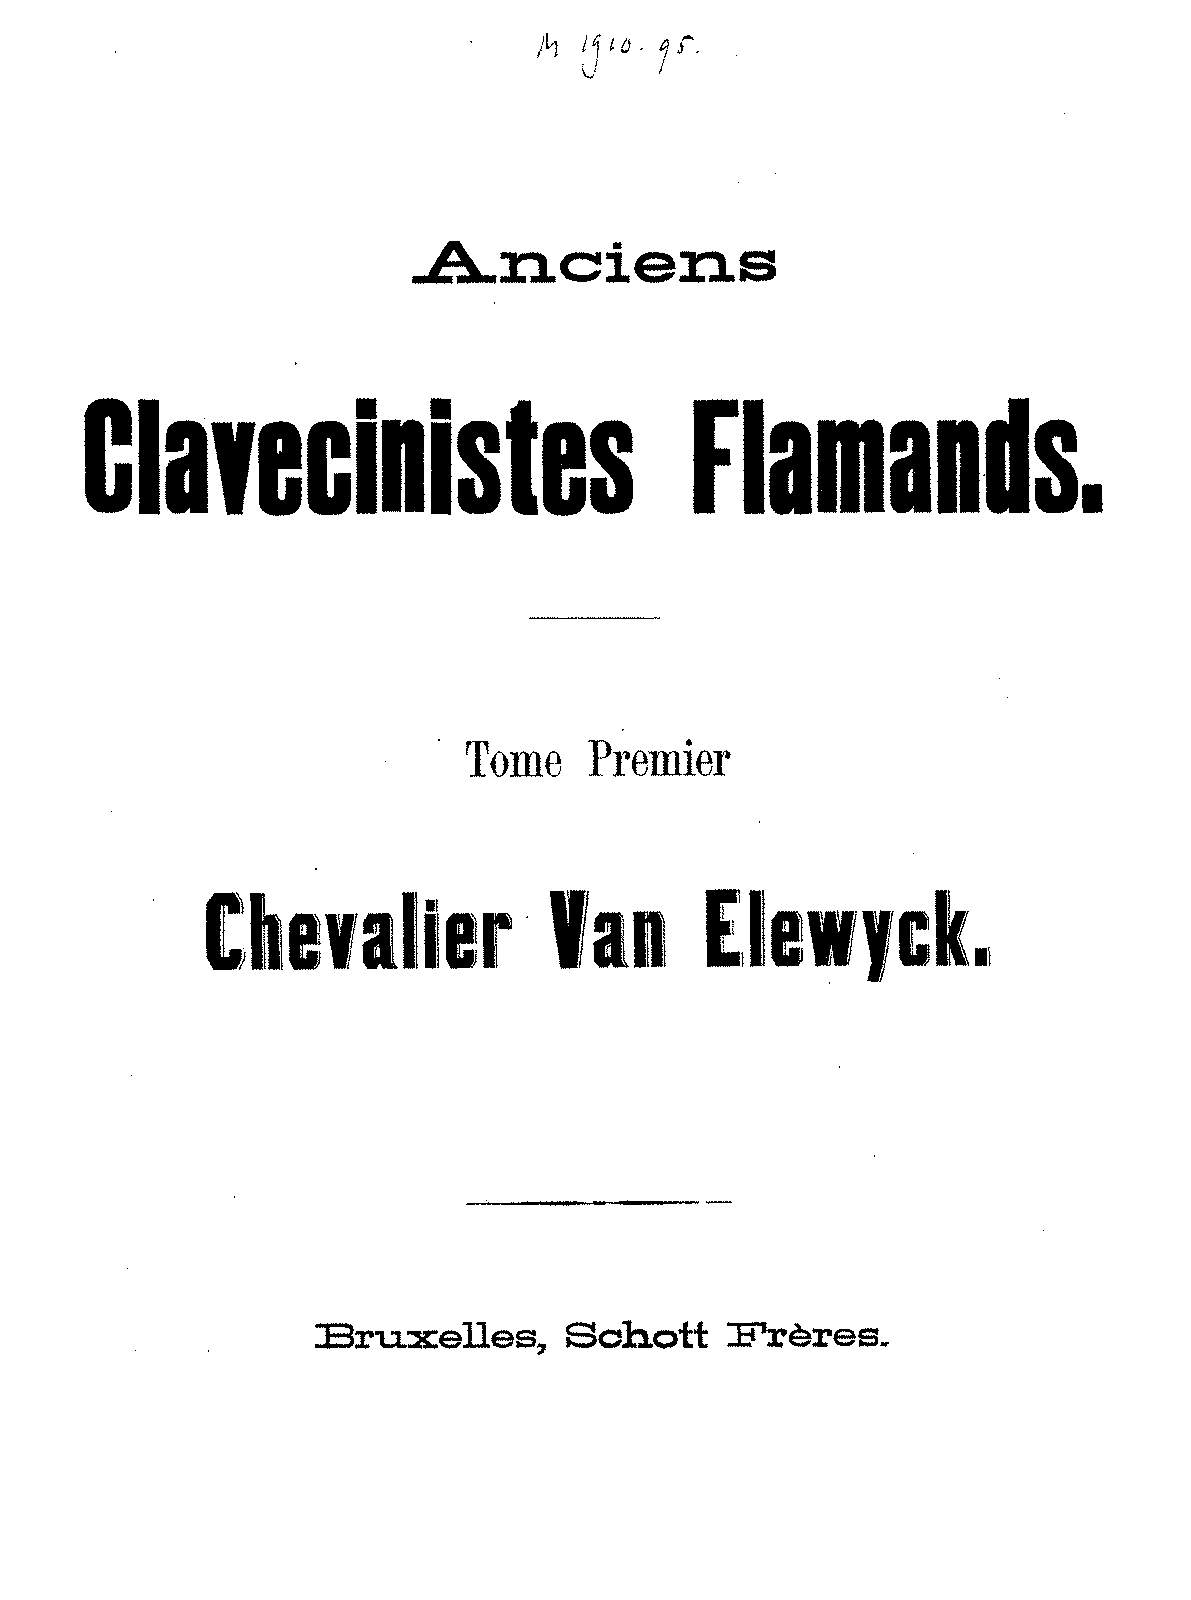 PMLP252857-Anciens Clavecinistes Flamands v1 RSL.pdf